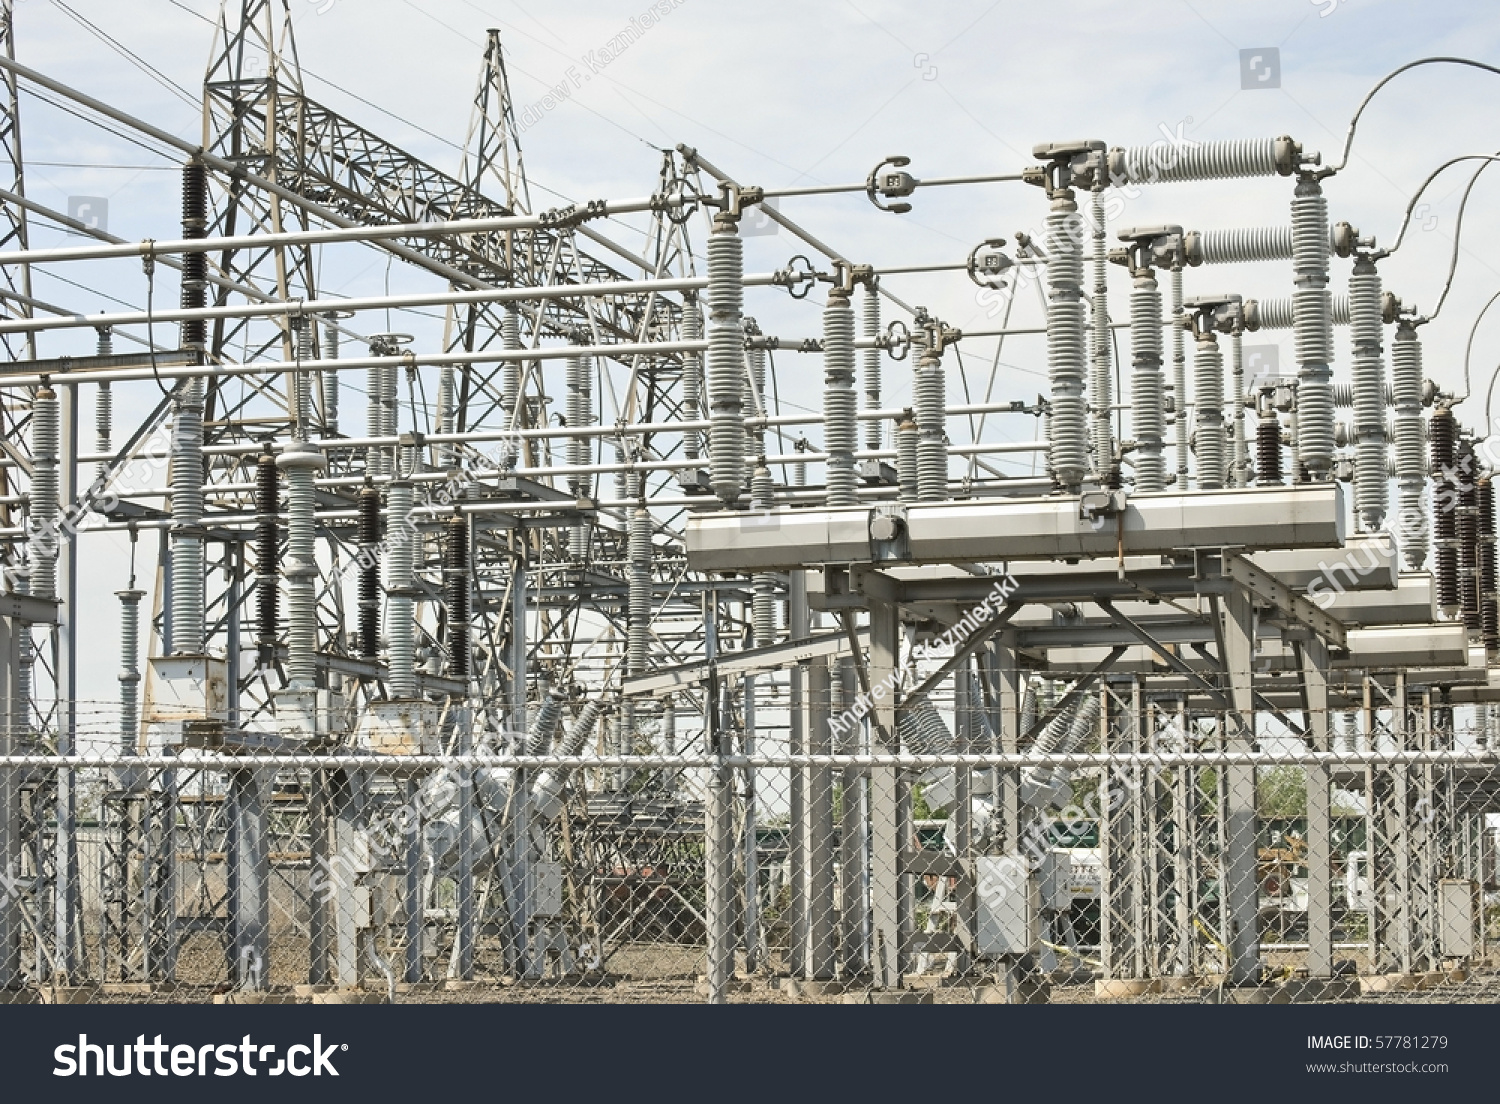 A view of electrical power plant equipment and cables.